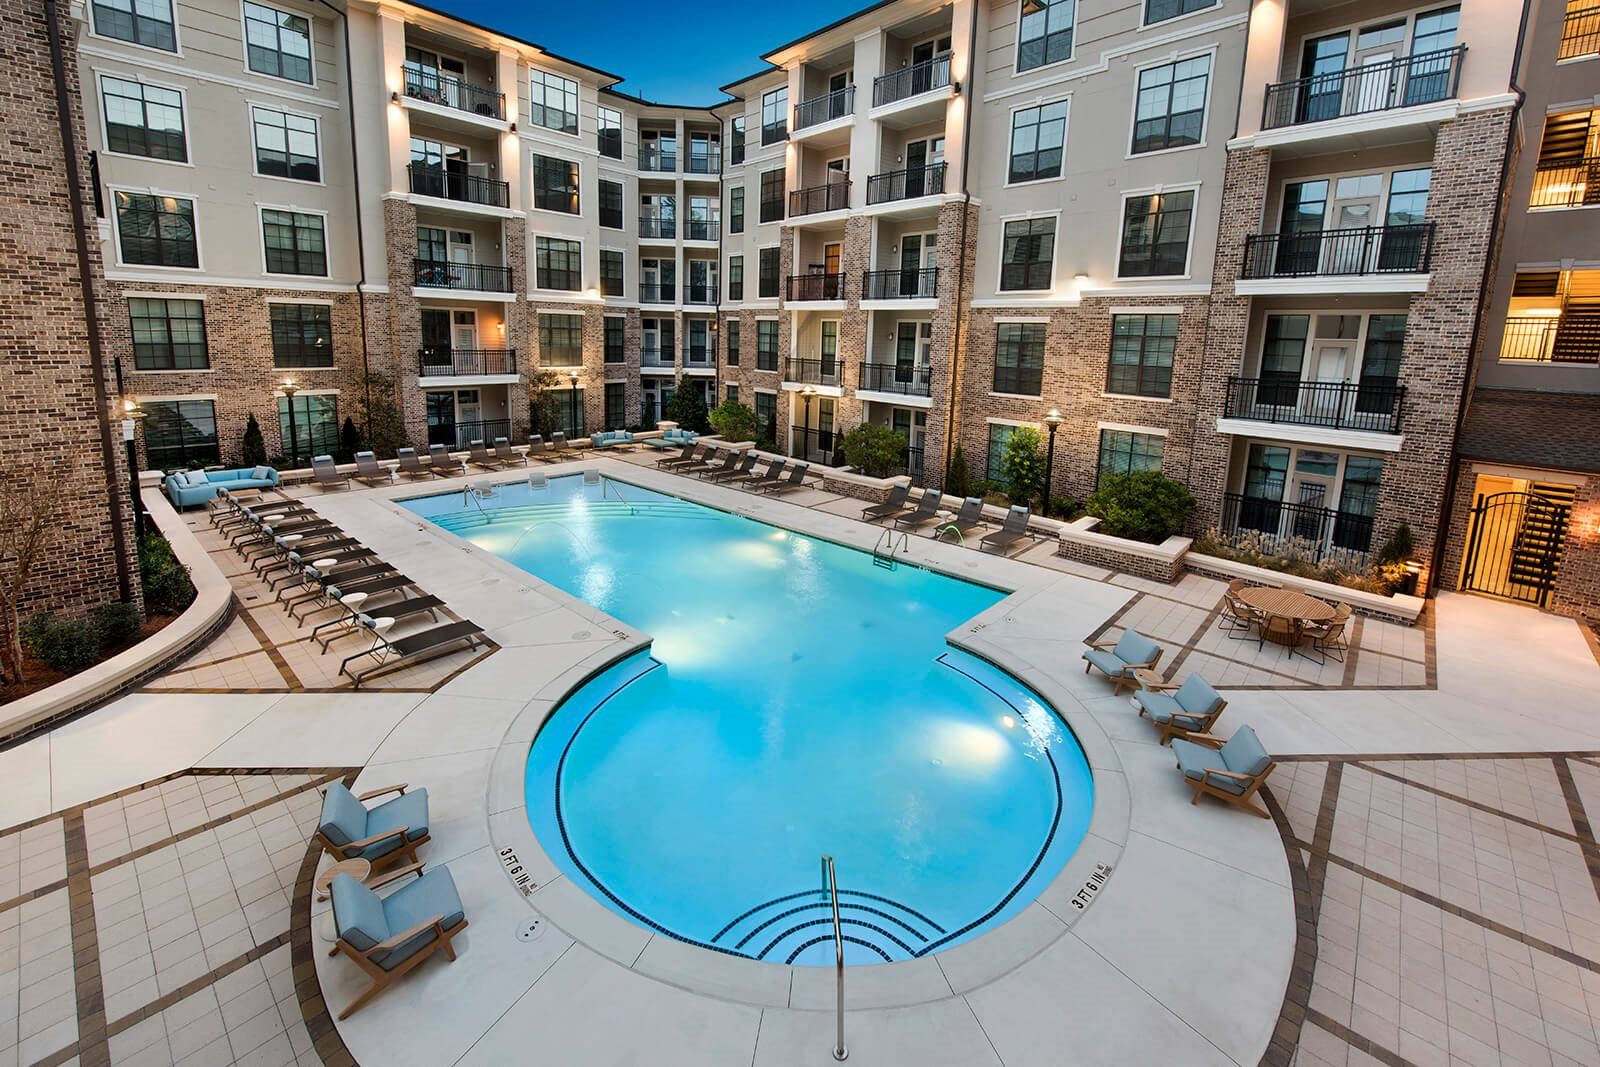 Comfortable Apartments with Expansive Amenities at Windsor Chastain, 255 Franklin Rd, GA